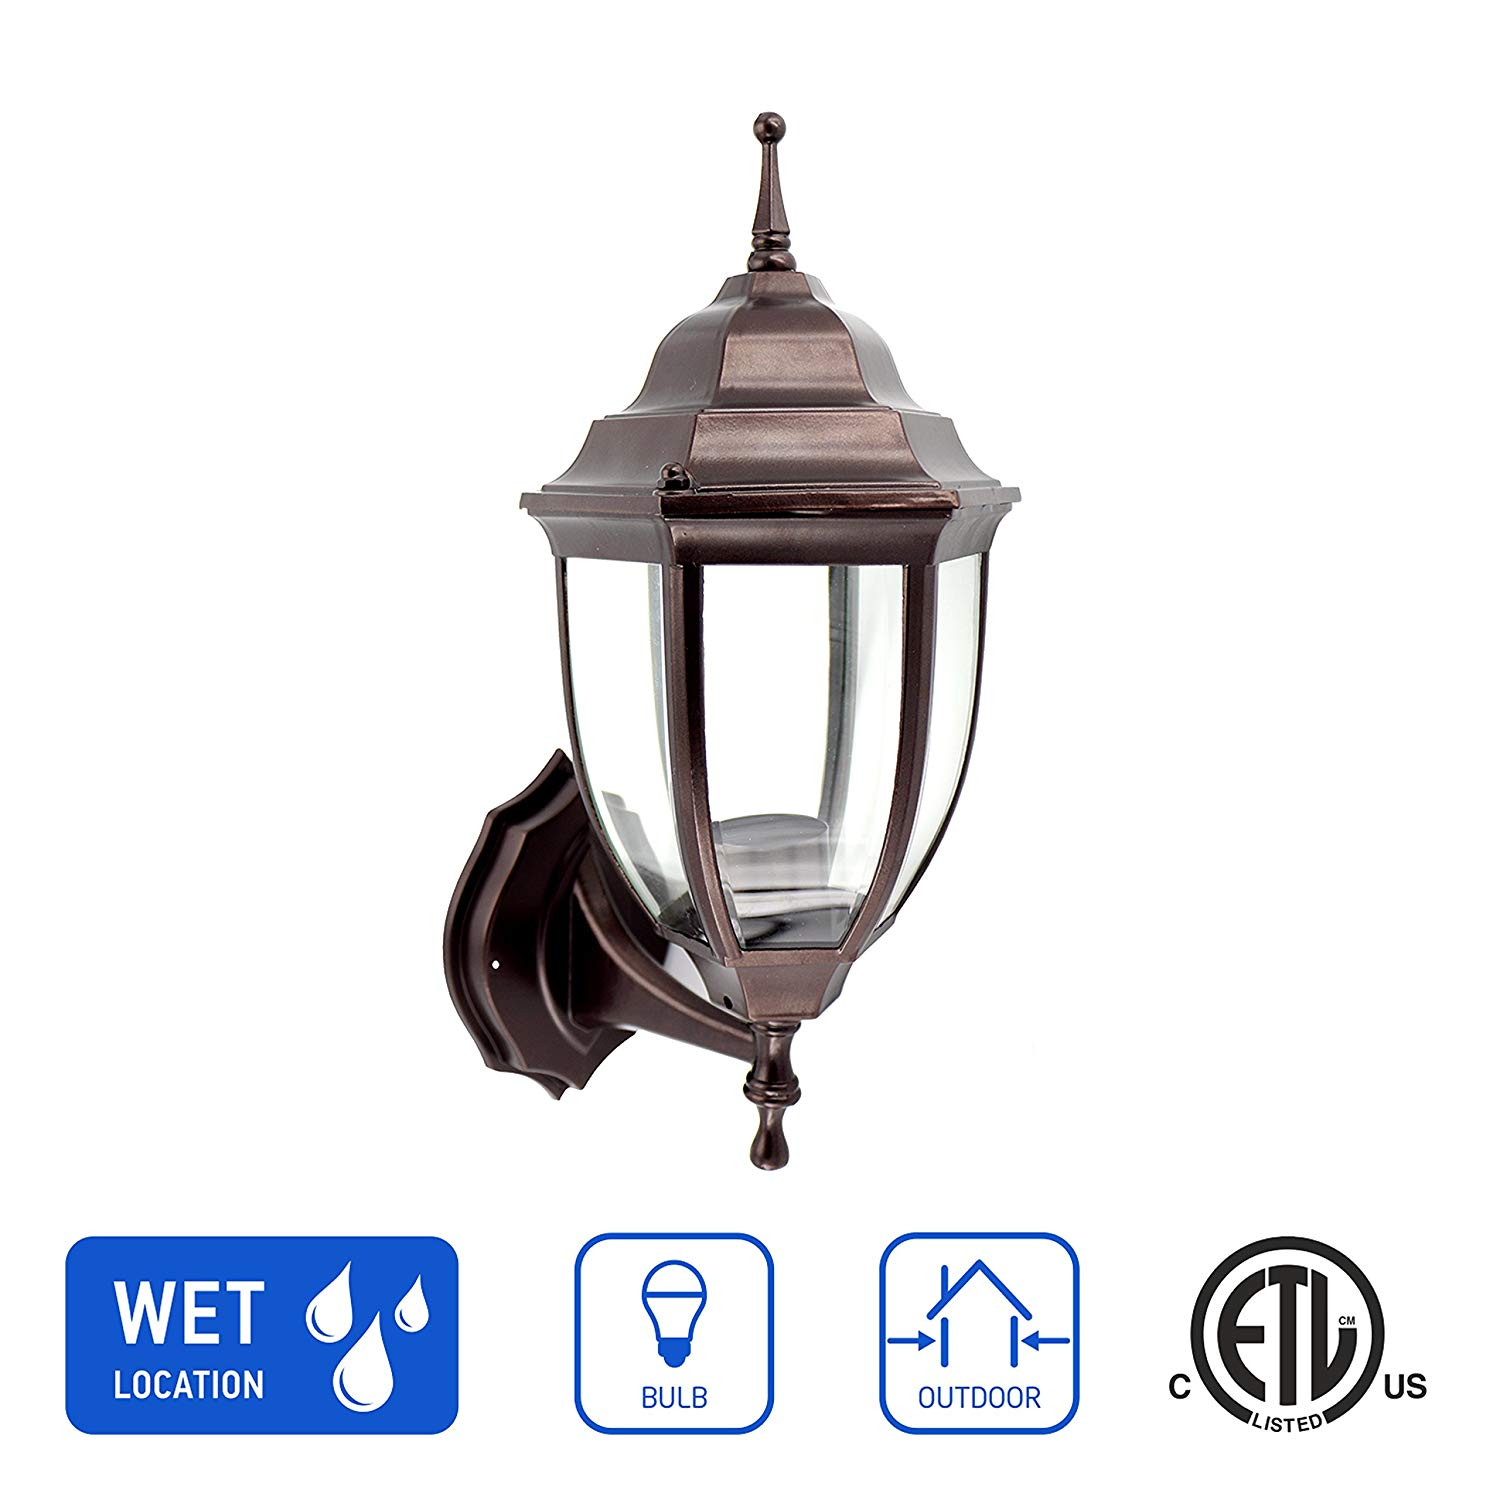 IN HOME 1-Light Outdoor Exterior Wall Up Lantern, Traditional Porch Patio Lighting Fixture L04 with One E26 Base, Water-Proof, Bronze Cast Aluminum Housing, Clear Glass Panels, ETL Listed